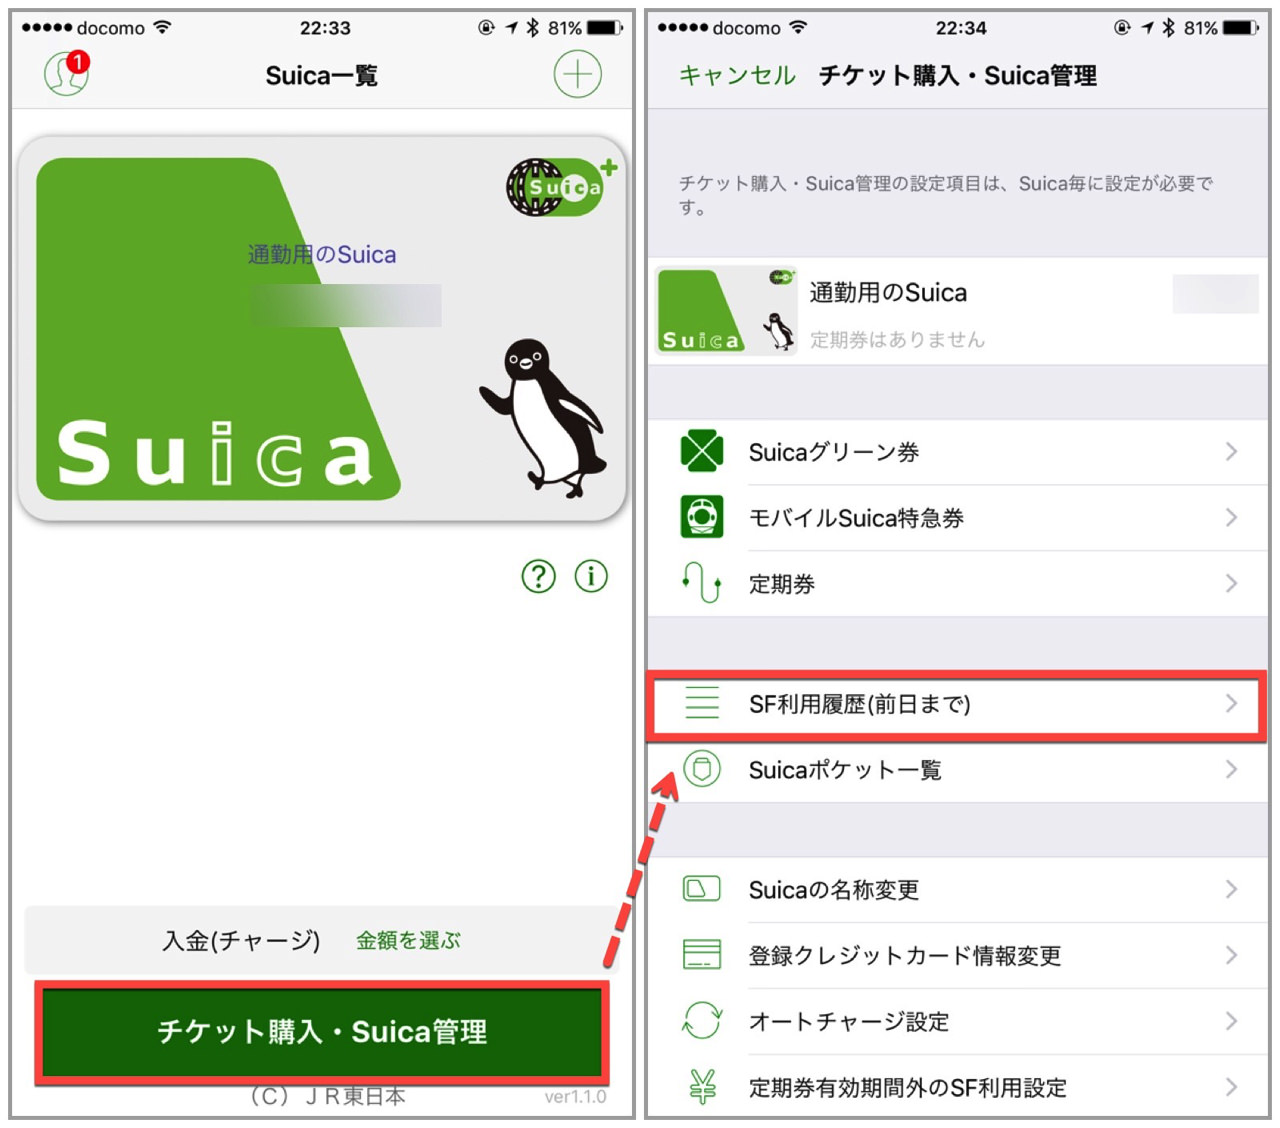 Check suica usage history3